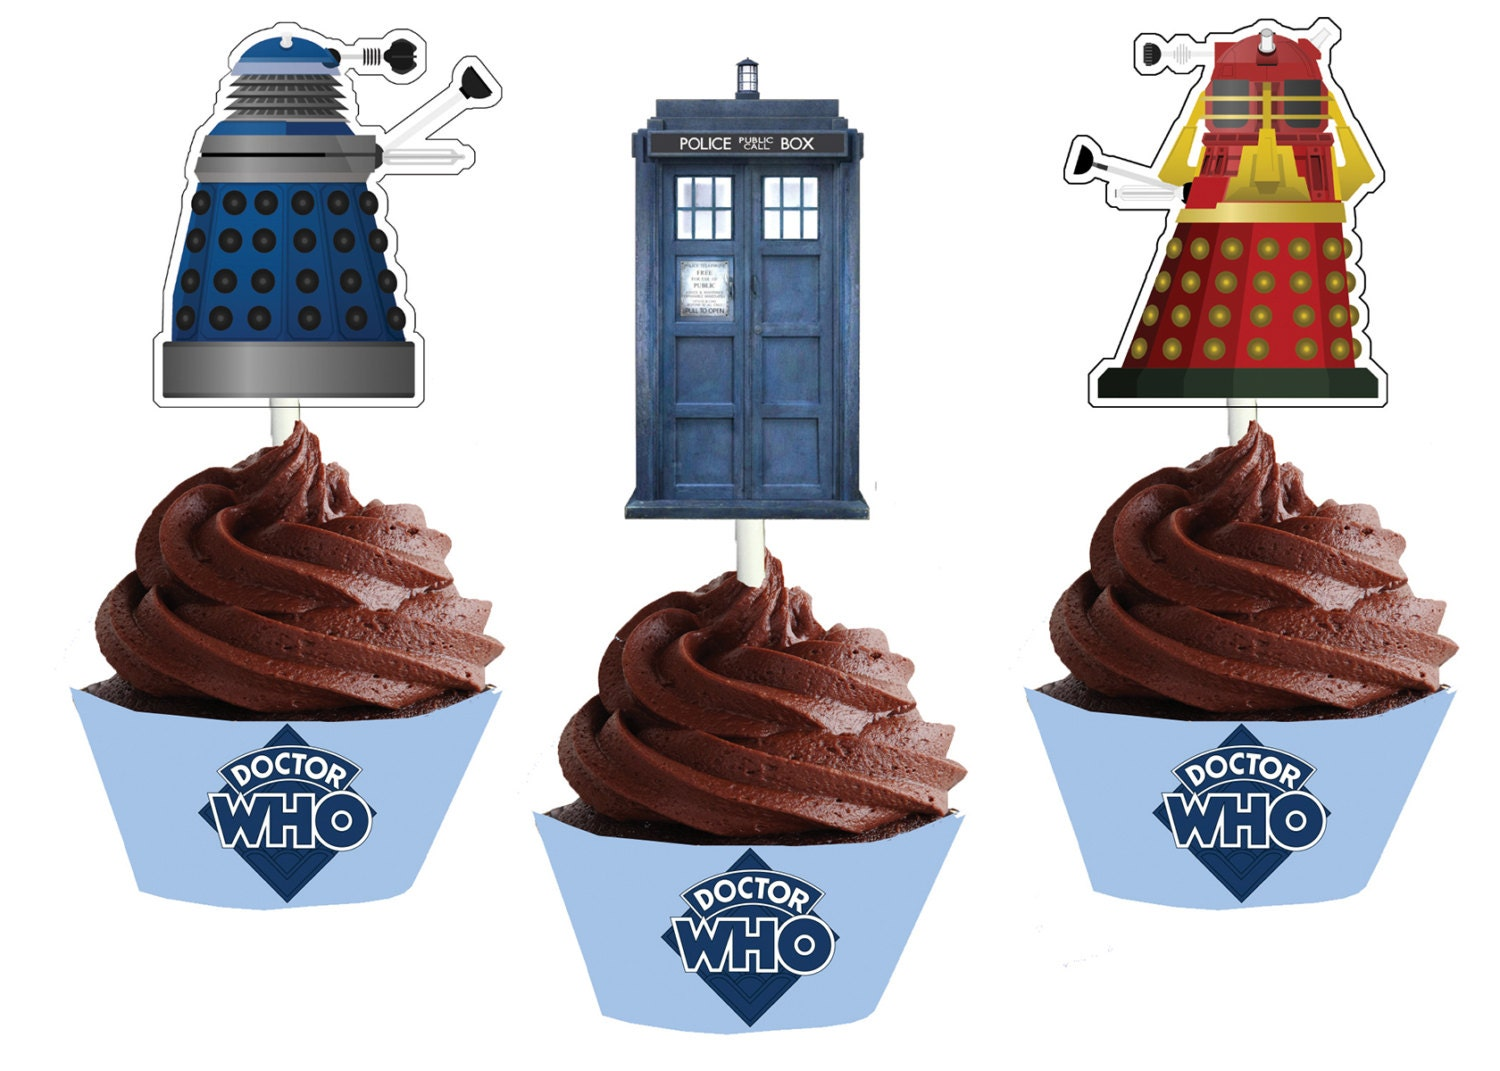 Dr Who Cake Toppers Australia